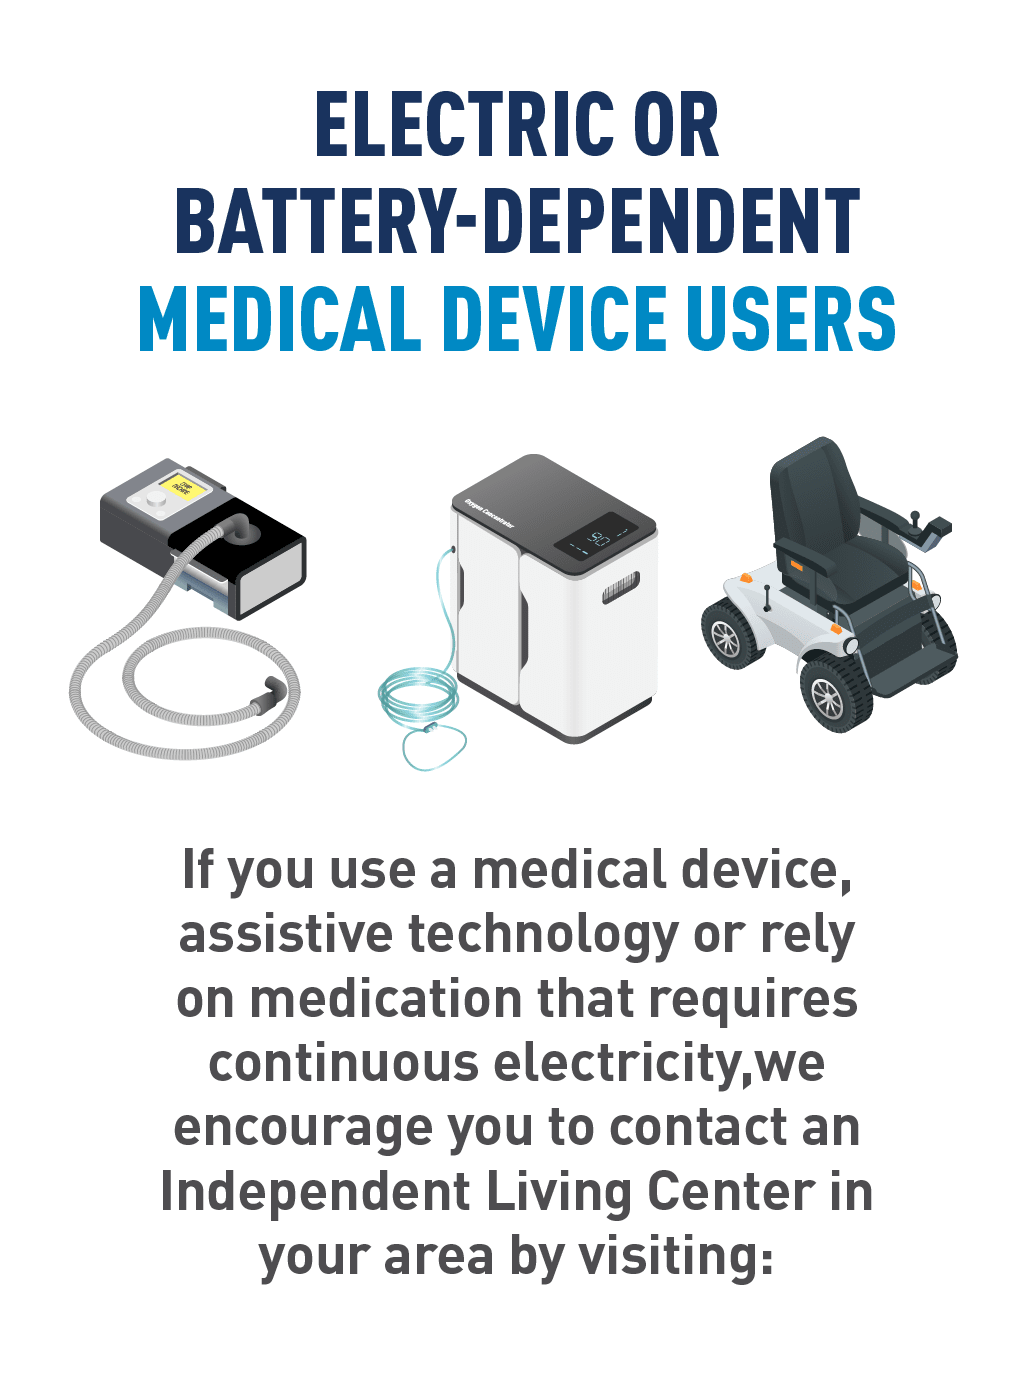 Graphic of electric-powered medical devices